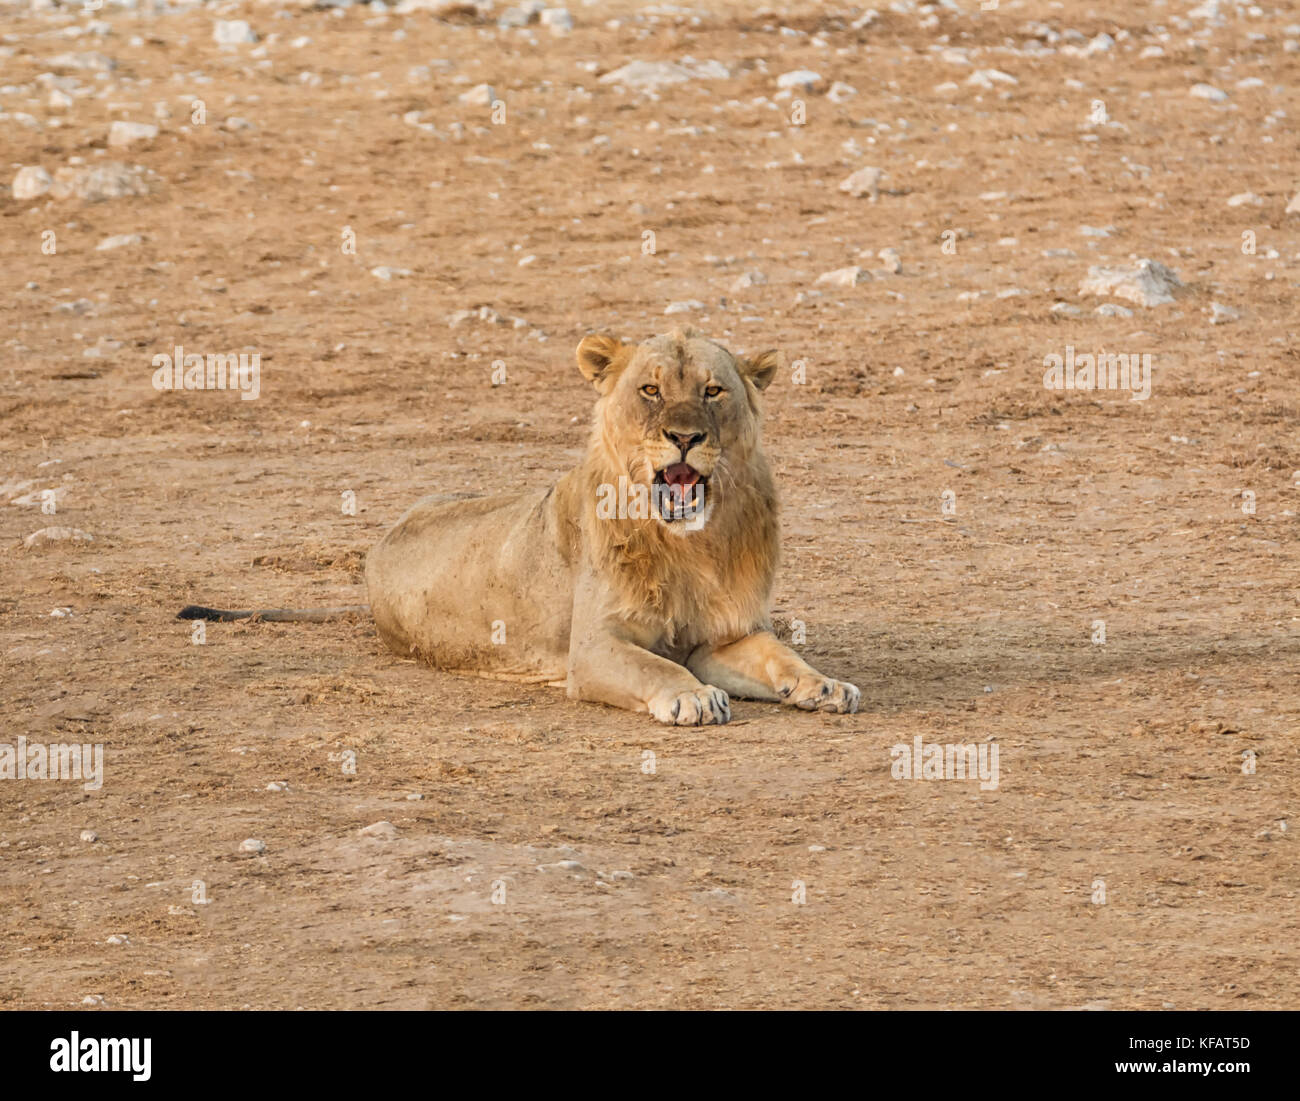 Lion Lying Down High Resolution Stock Photography And Images Alamy Select from premium lion laying down of the highest quality. https www alamy com stock image a male lion lying down in the namibian savanna 164351641 html